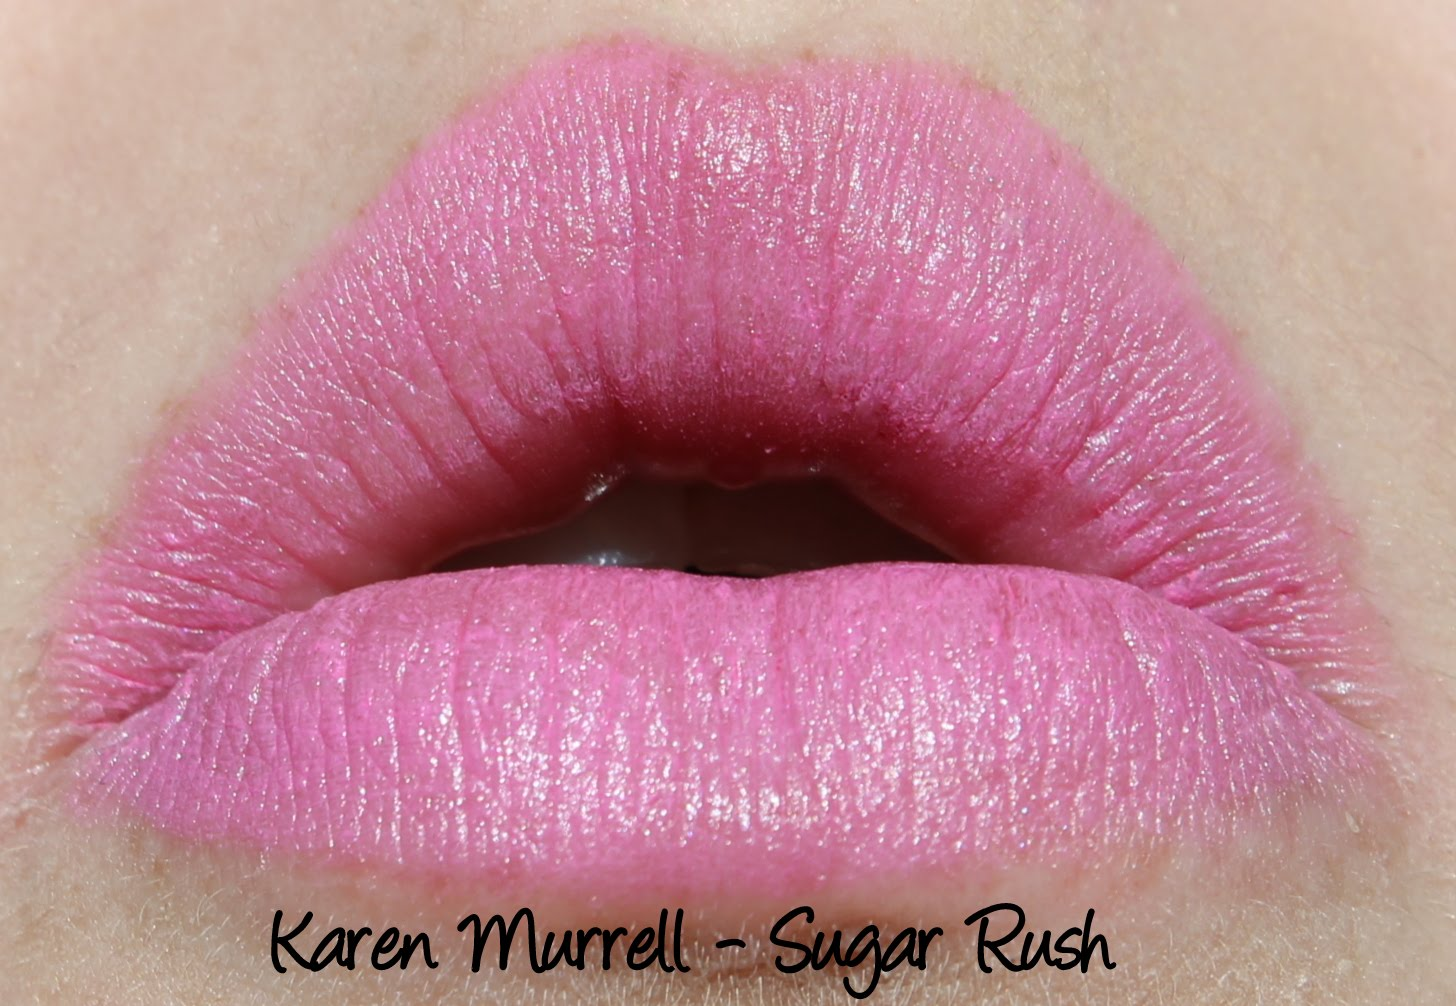 Karen Murrell Sugar Rush Lipstick Swatches & Review